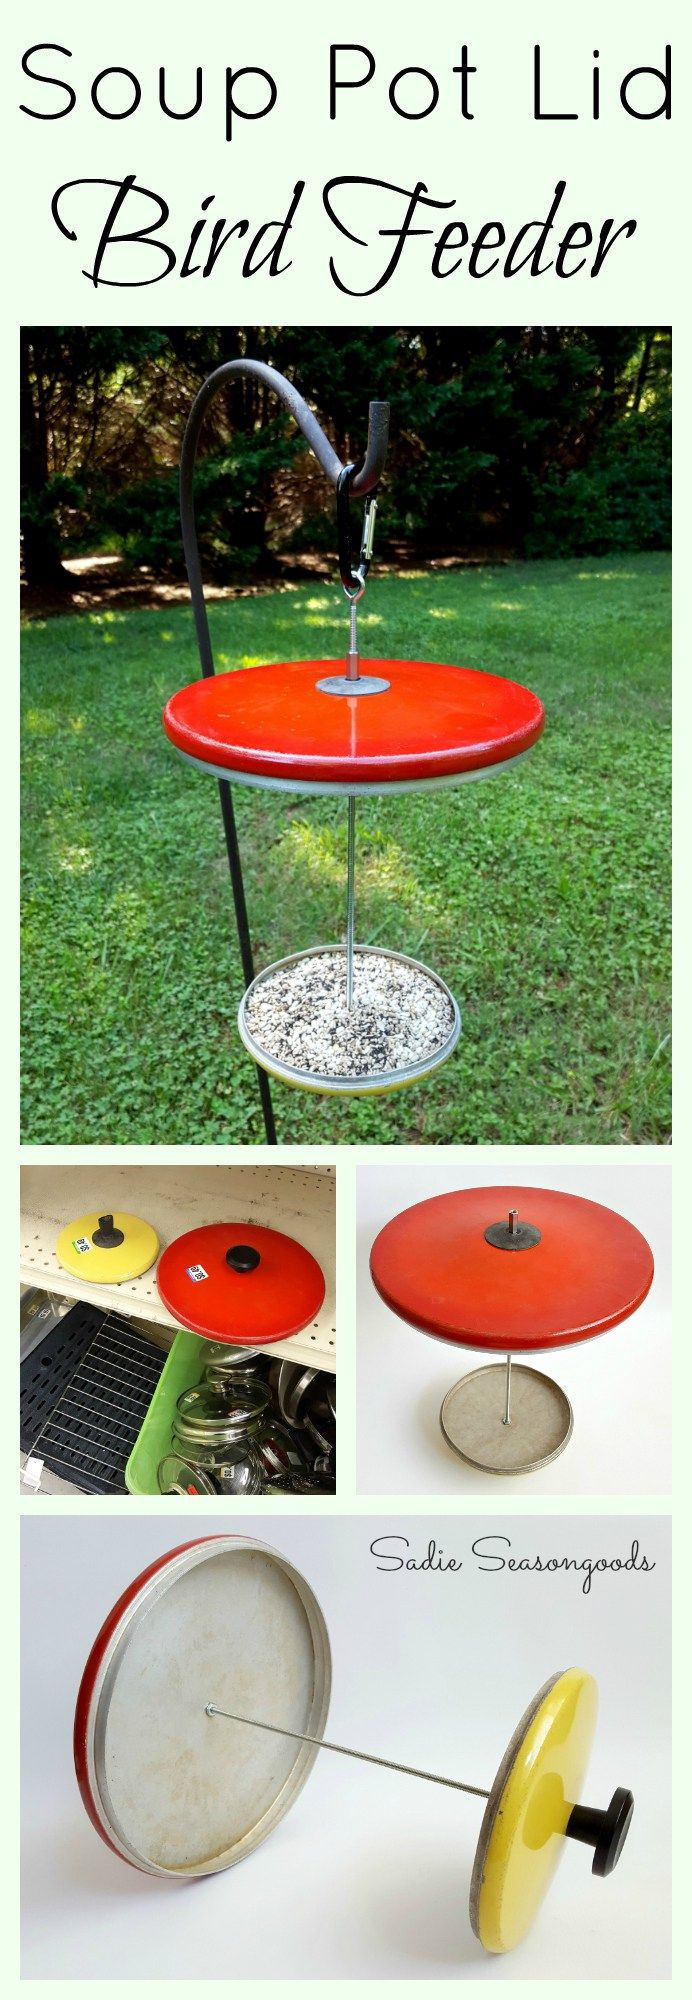 Repurposing thrift store pot lids into a bird feeder by Sadie Seasongoods / www.sadieseasongoods.com